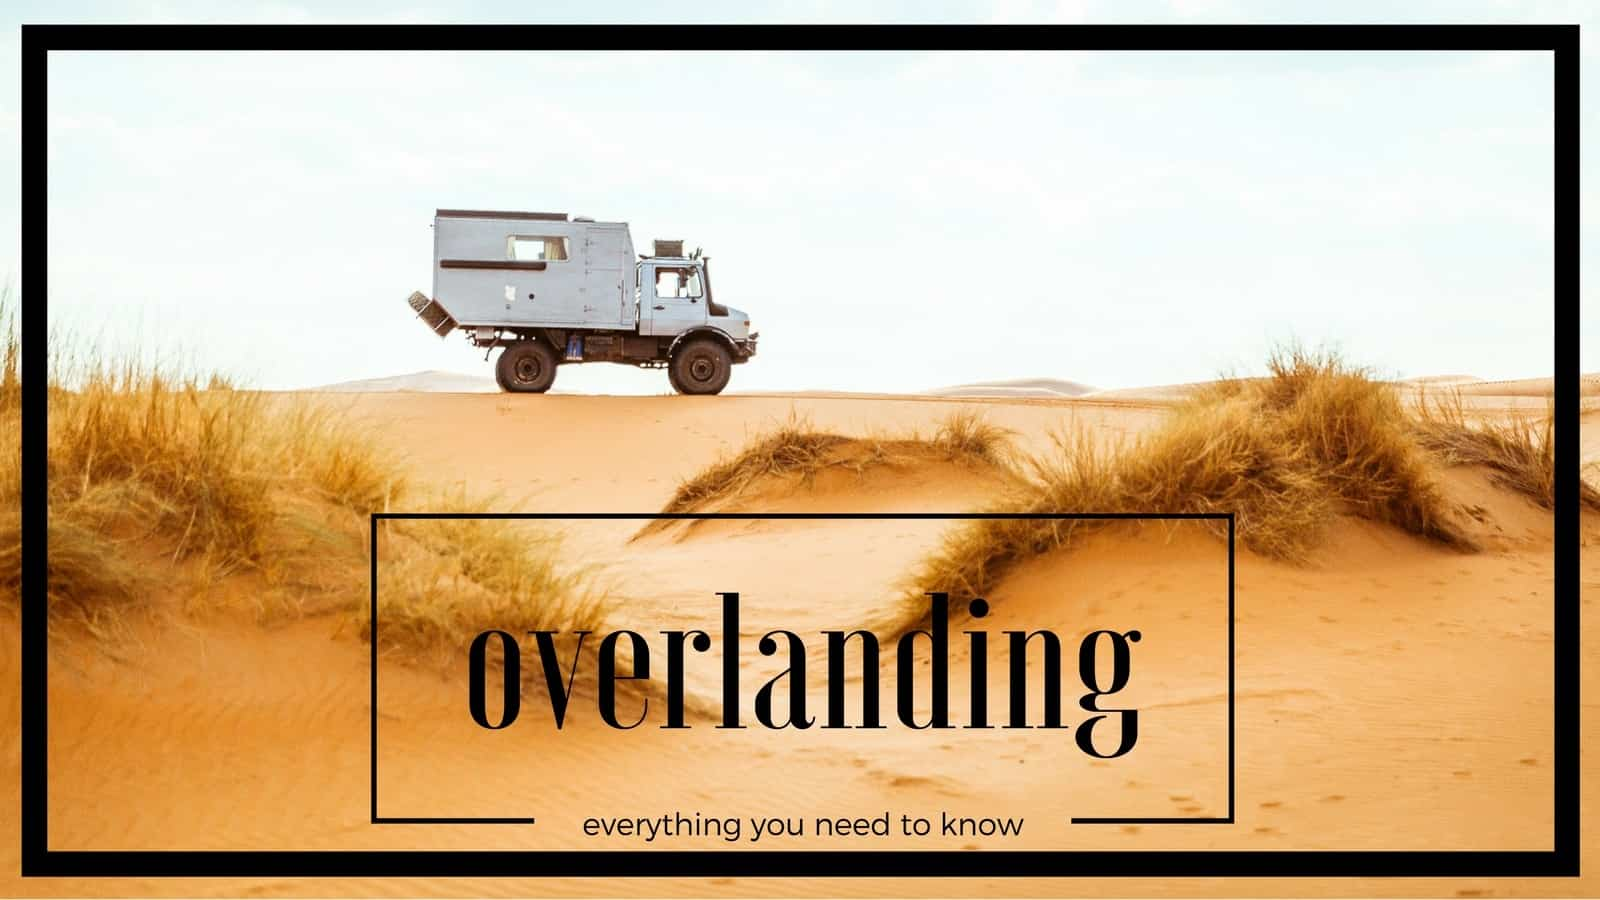 All you need to know about overlanding